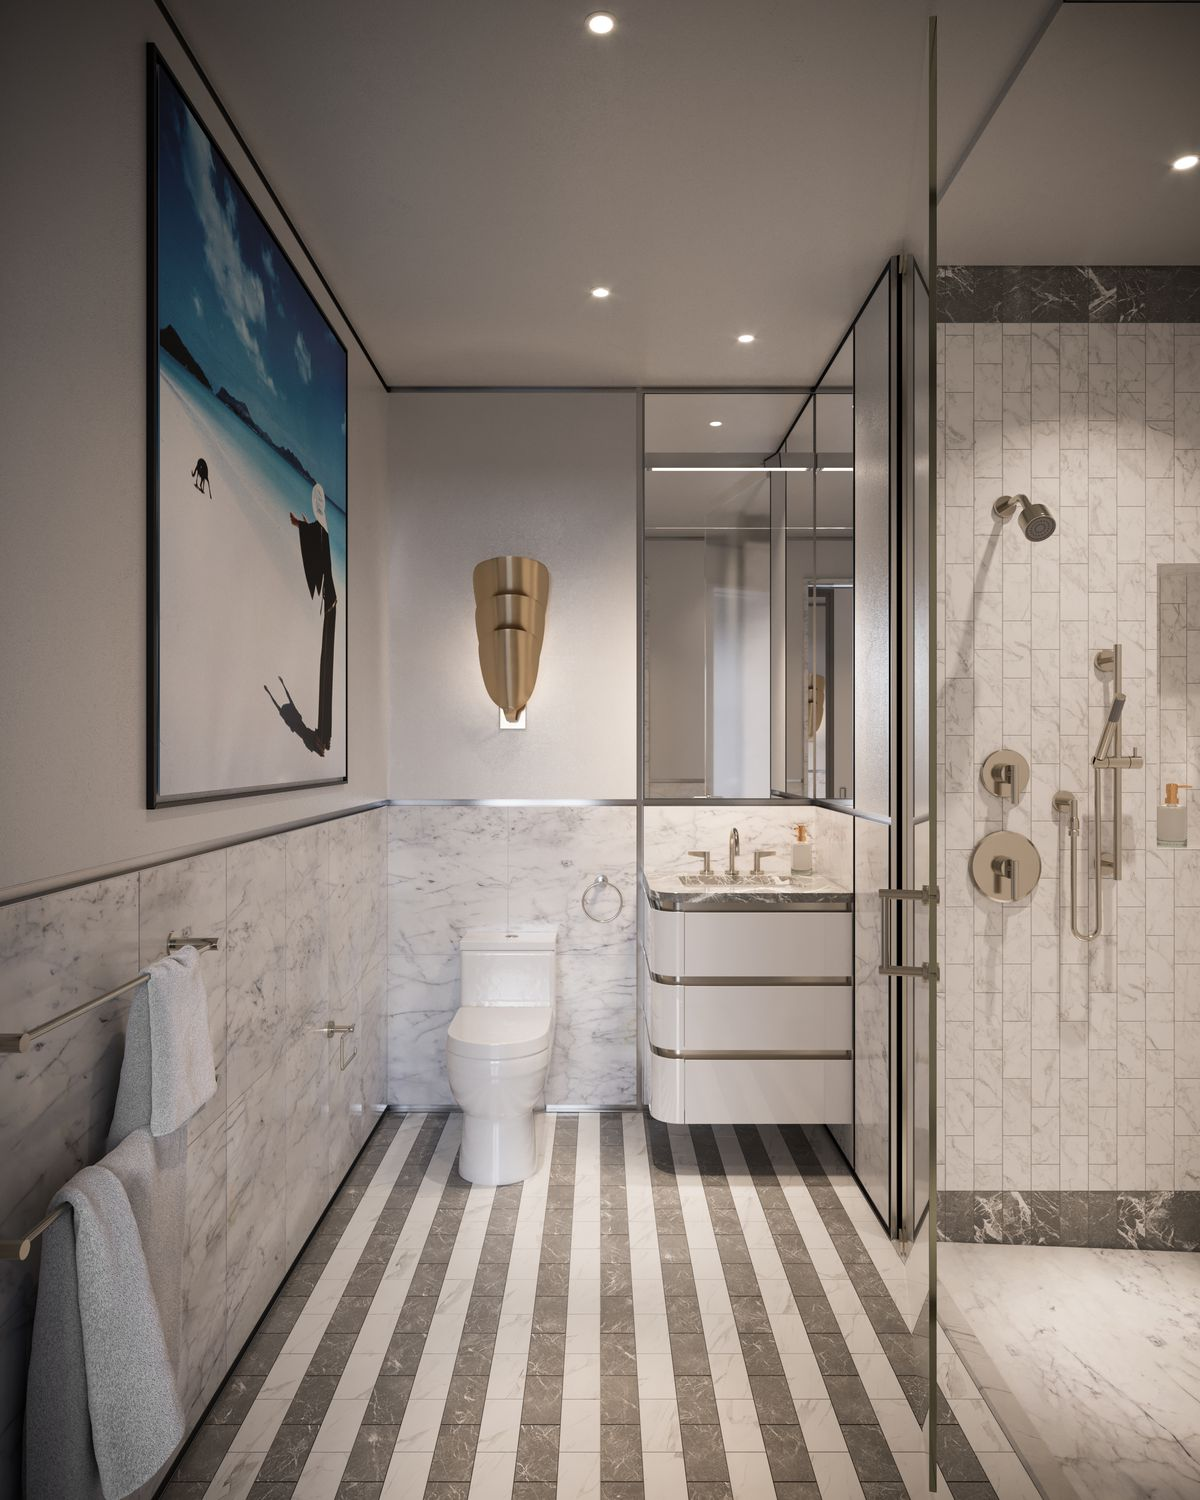 A bathroom with marble floors and finishes.